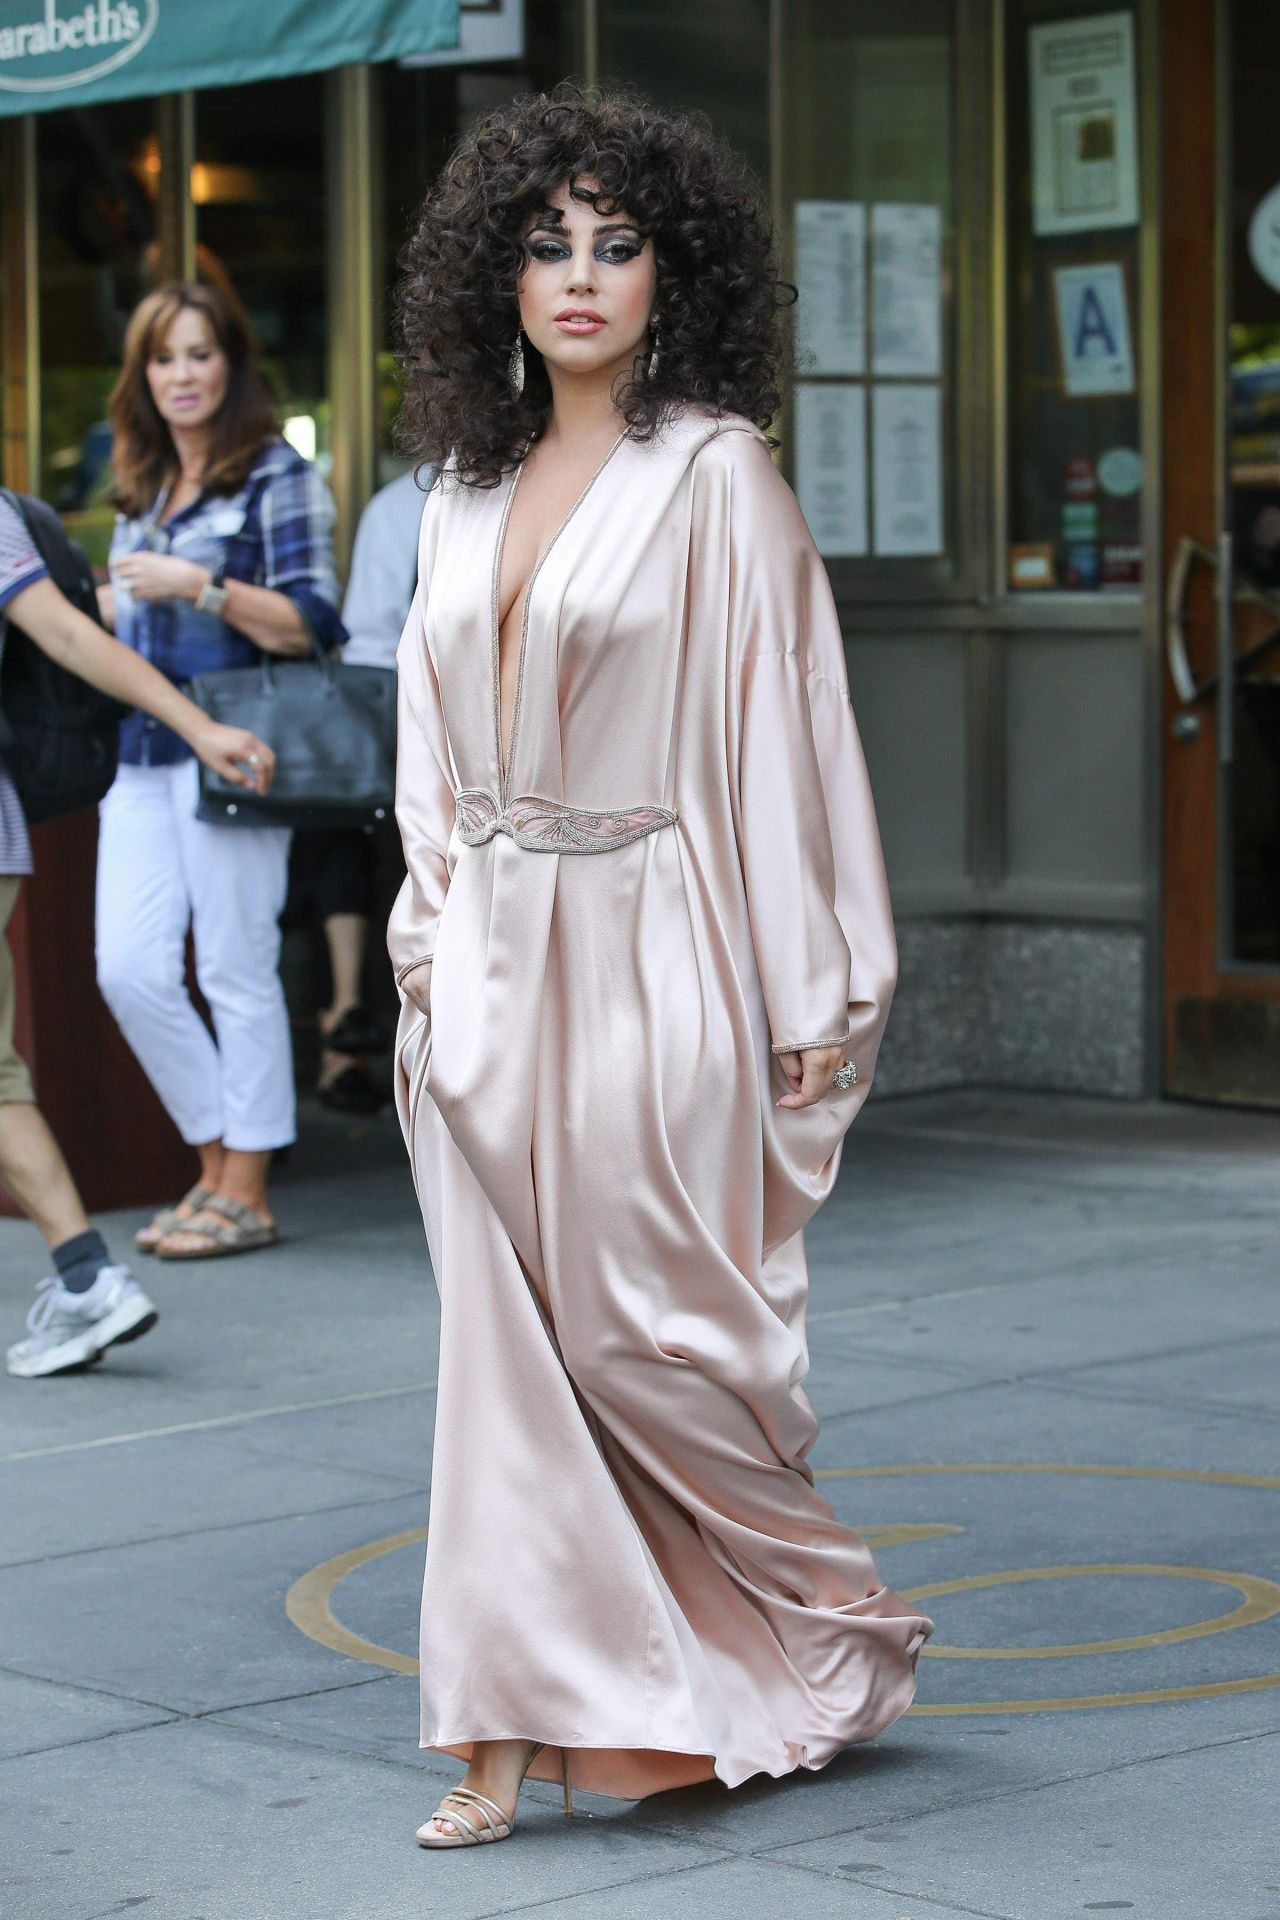 lady-gaga-in-pink-silk-dressing-gown-leaves-her-apartment-in-new-york-city_1.jpg